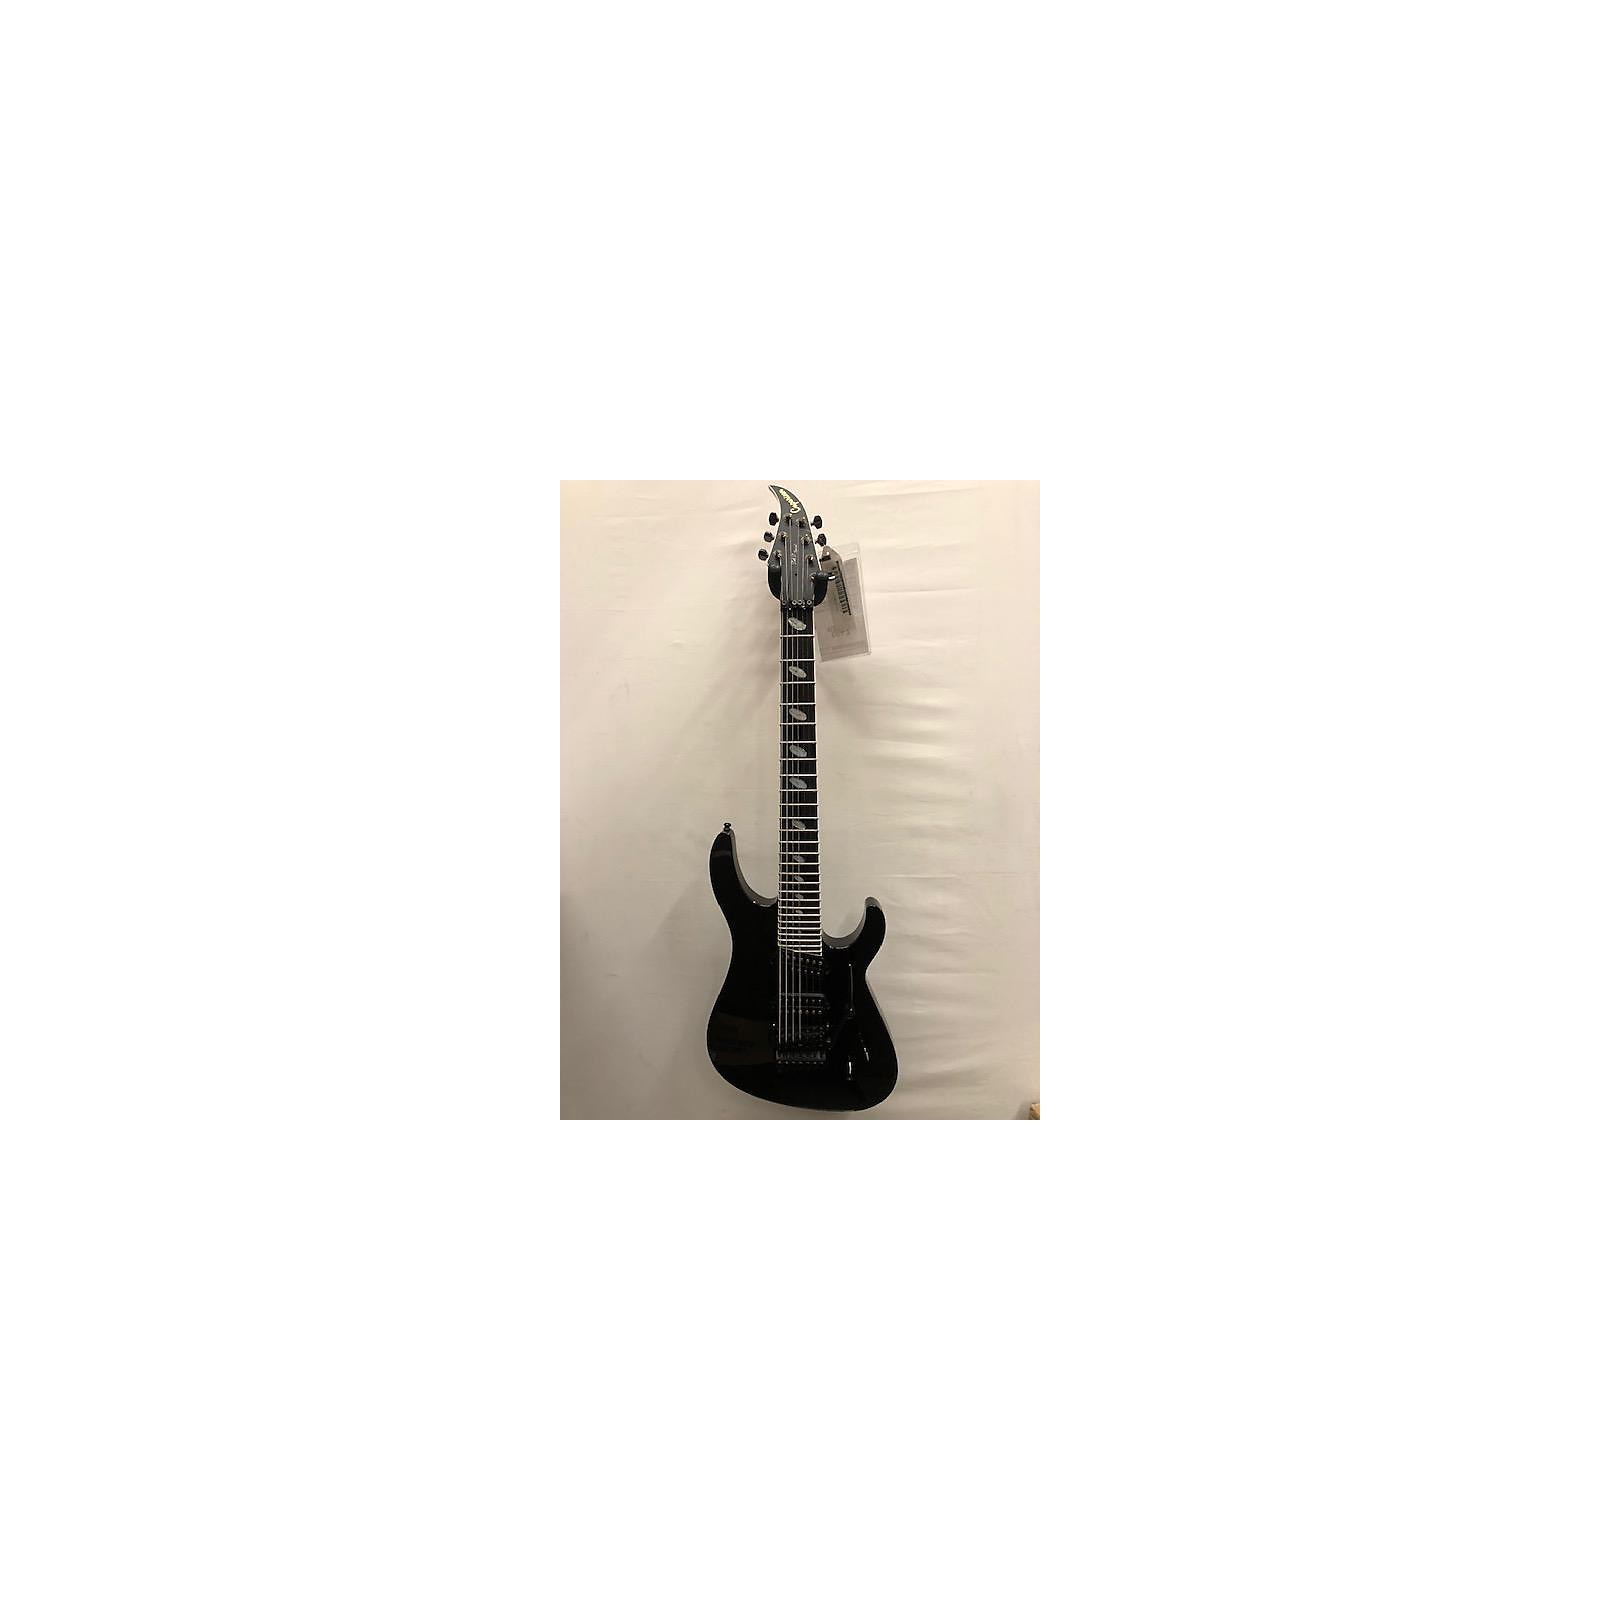 In Store Used Used Caparison TAT Special 7 Black Solid Body Electric Guitar